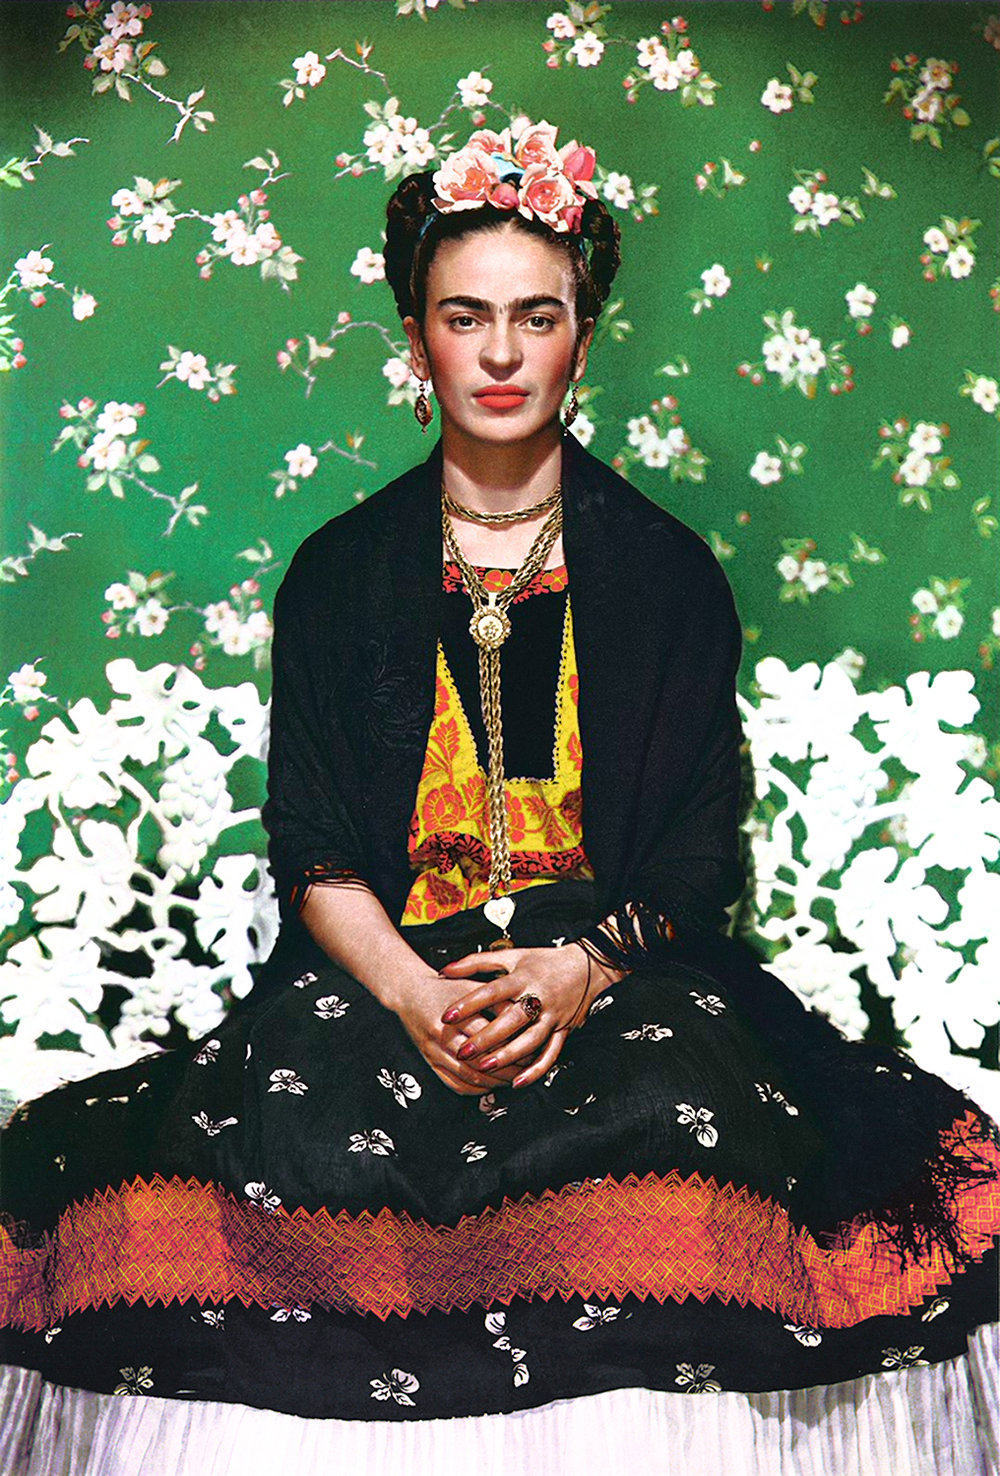 Frida-vogue-1937-TEST.jpg